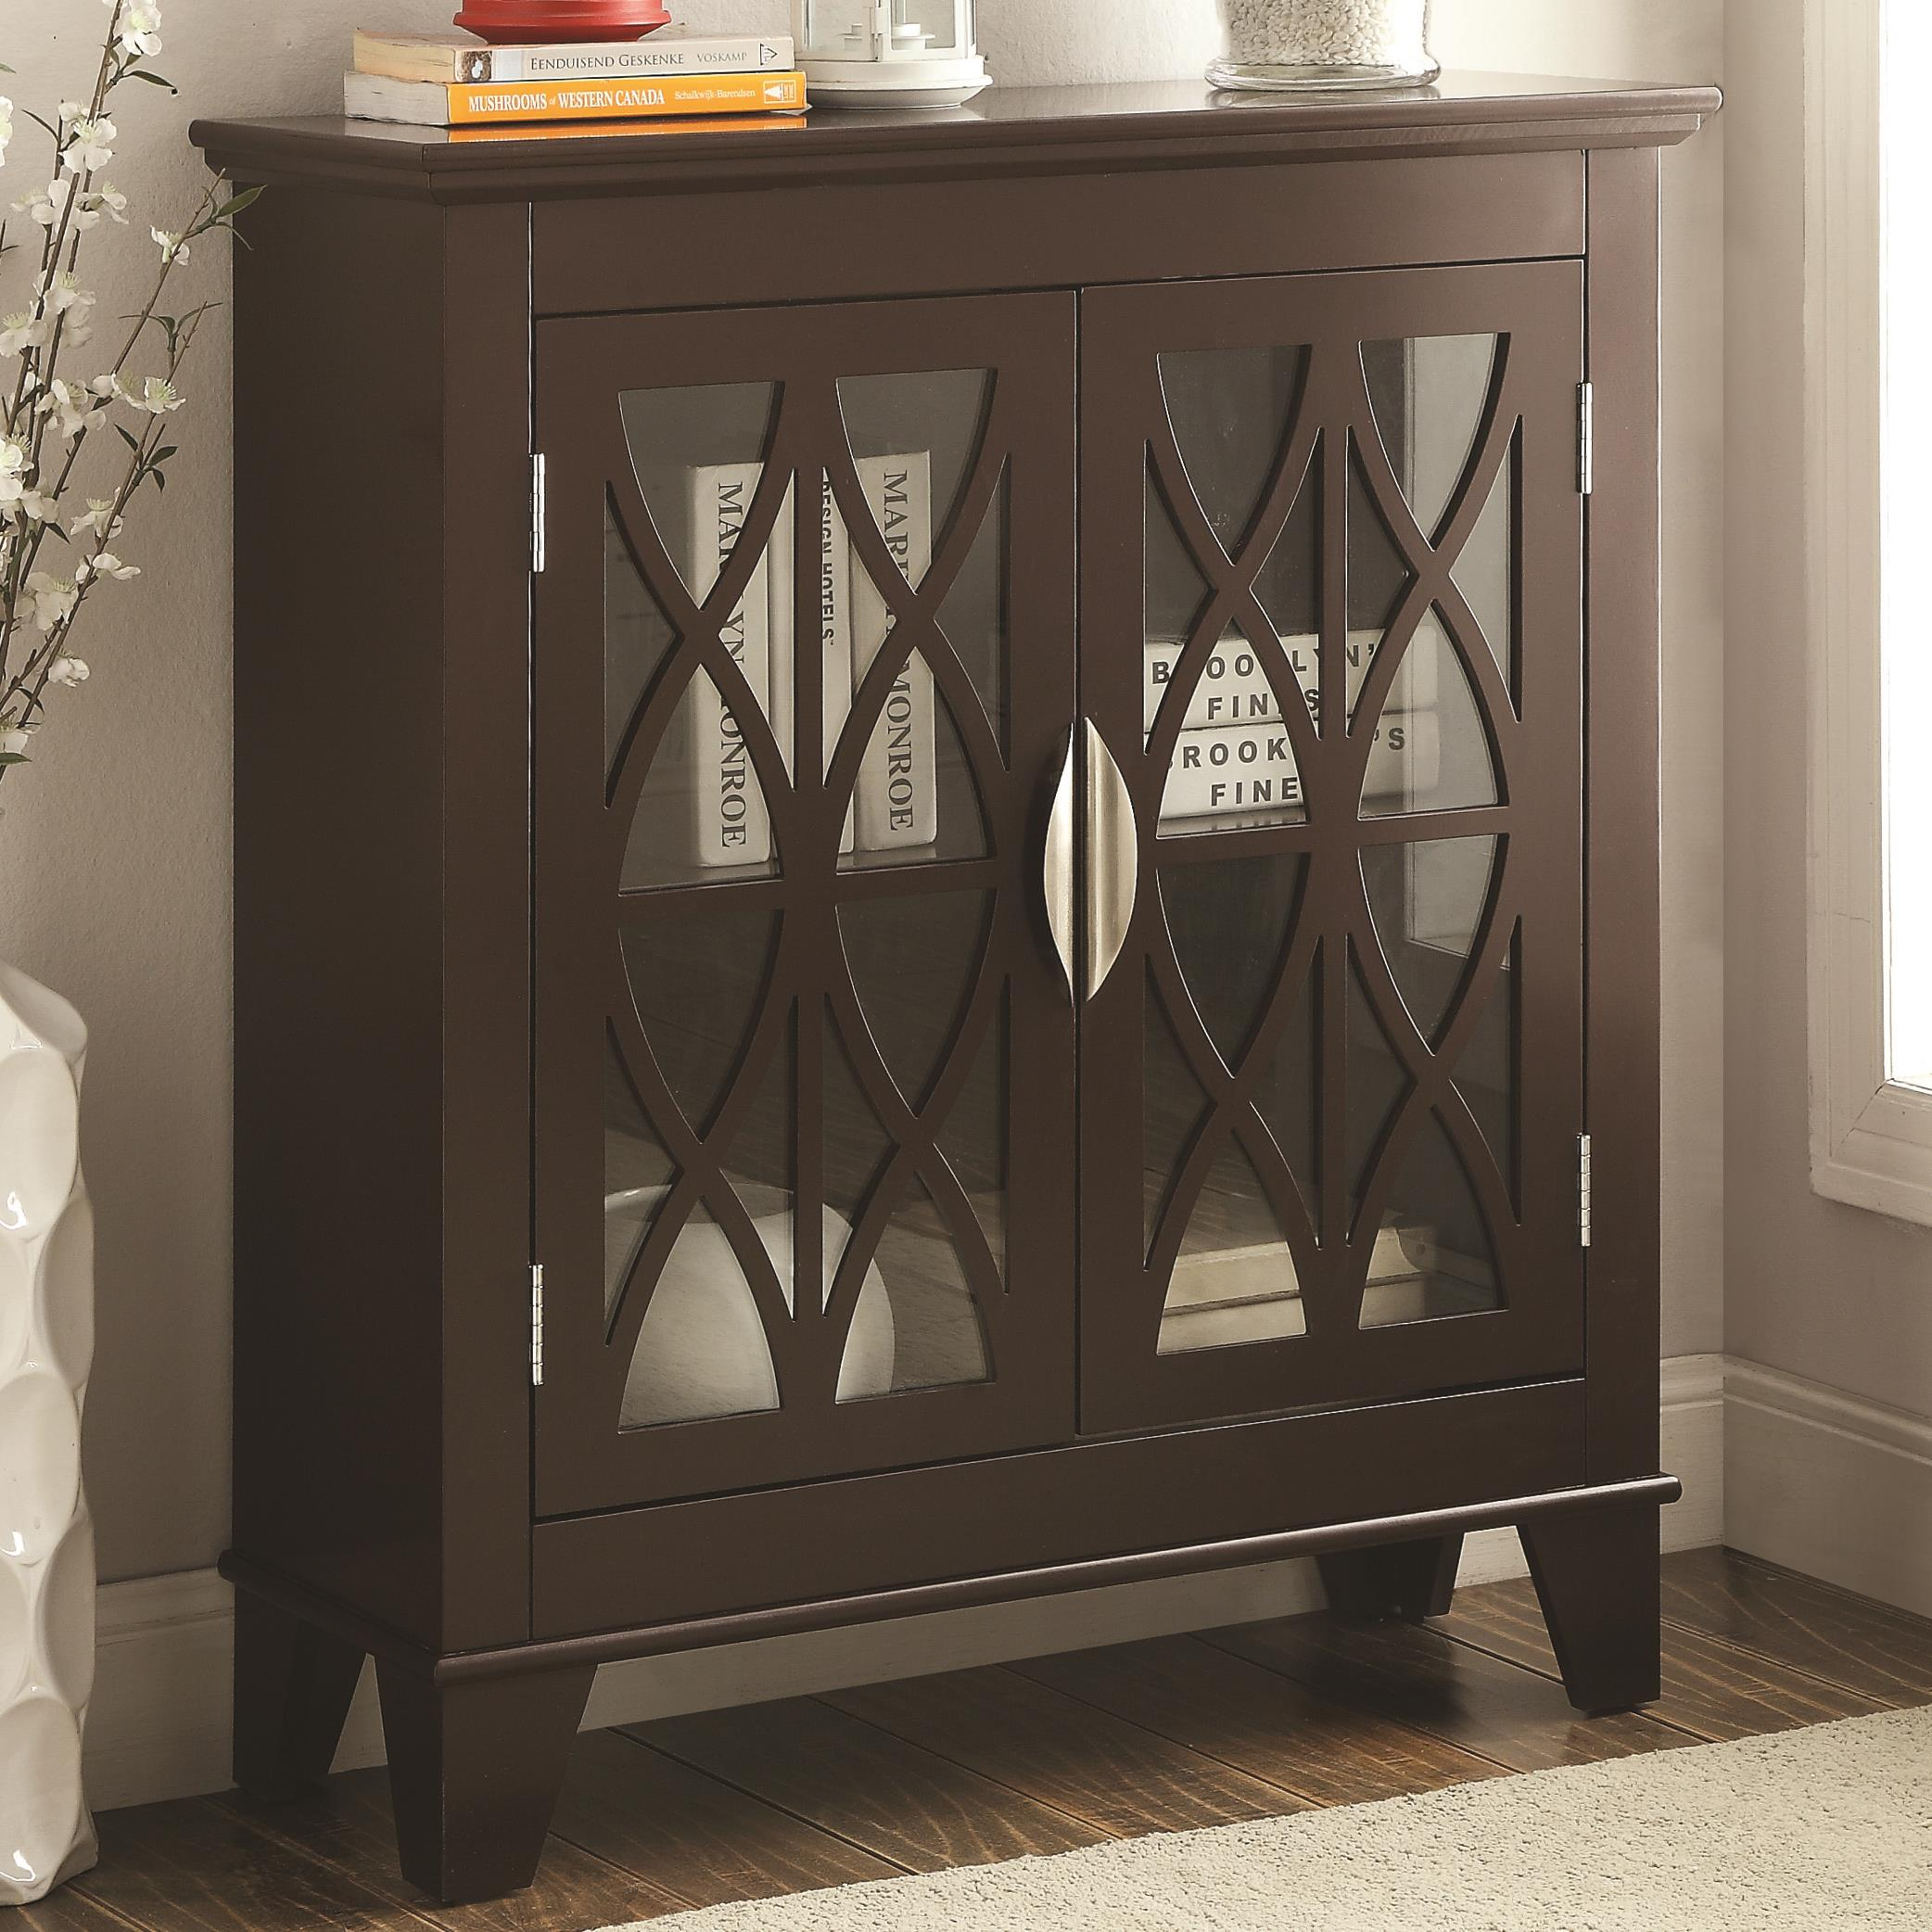 Coaster Accent Cabinets Accent Cabinet - Item Number: 950311